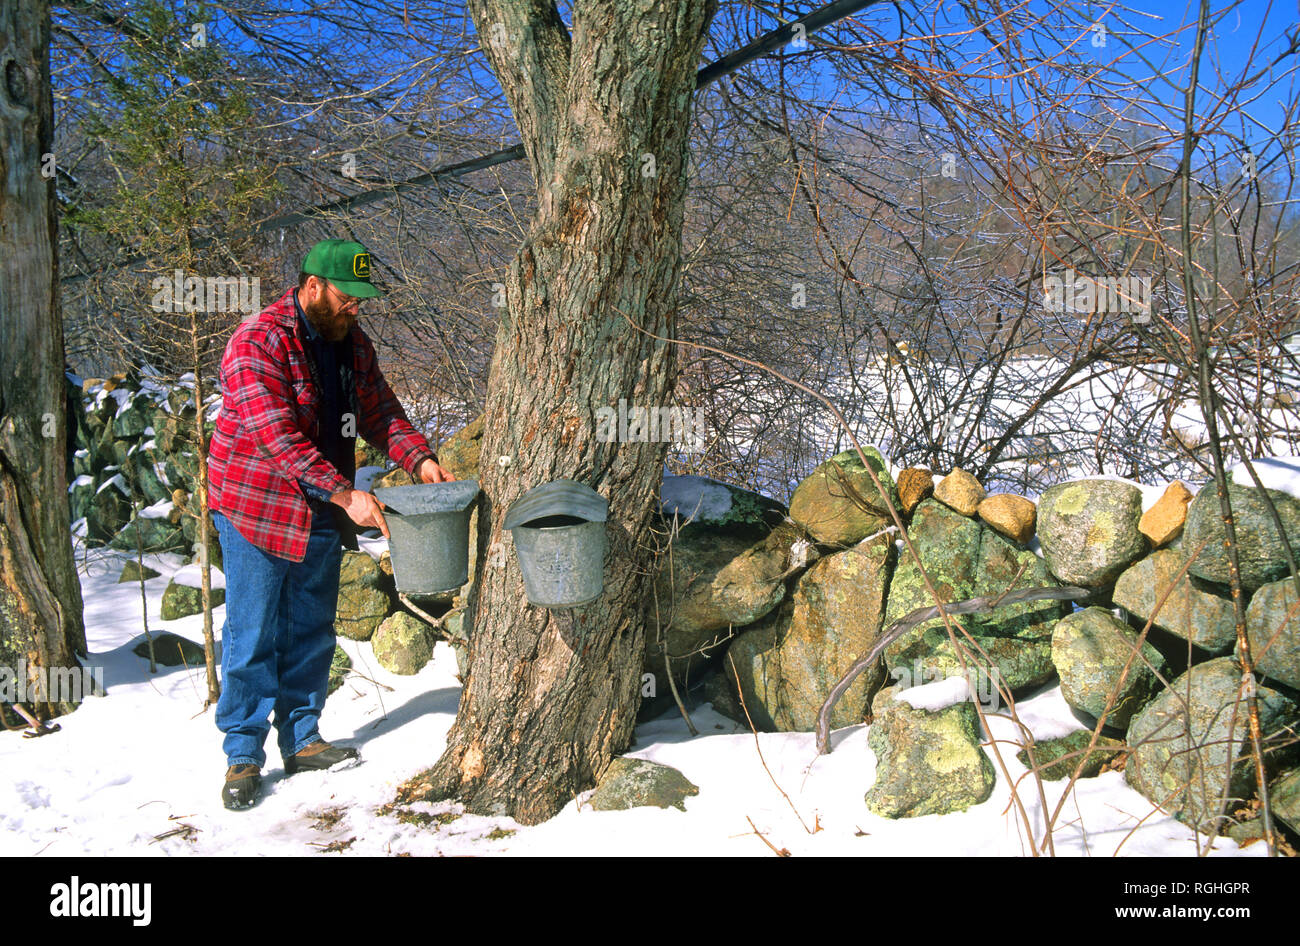 Checking the sap buckets during Maple syrup season in Richmond, Rhode Island, USA - Stock Image